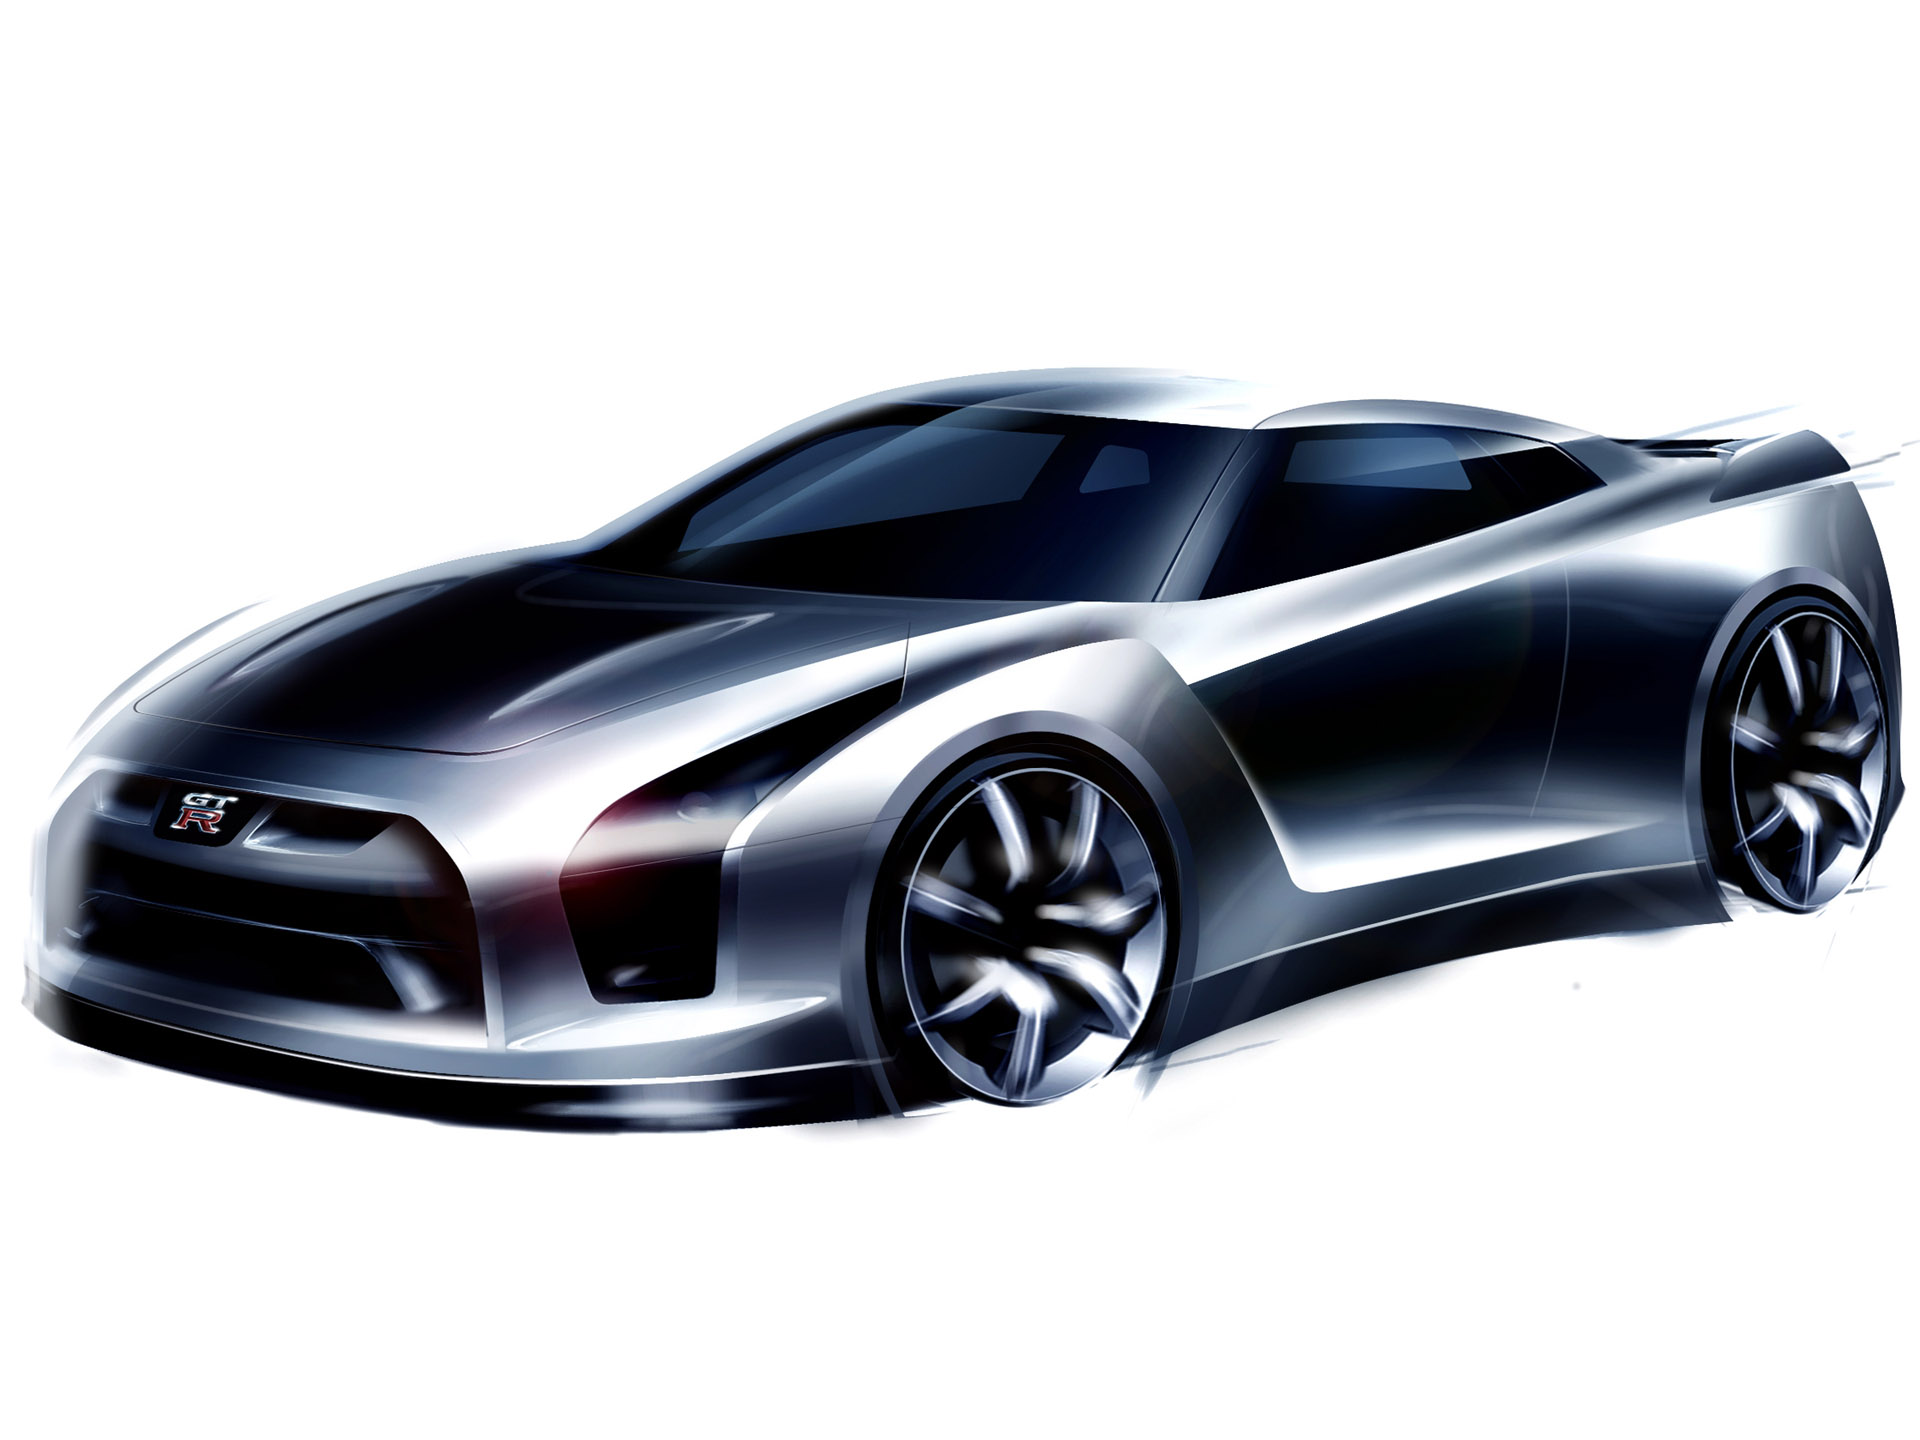 Nissan Skyline GT R 2007 or